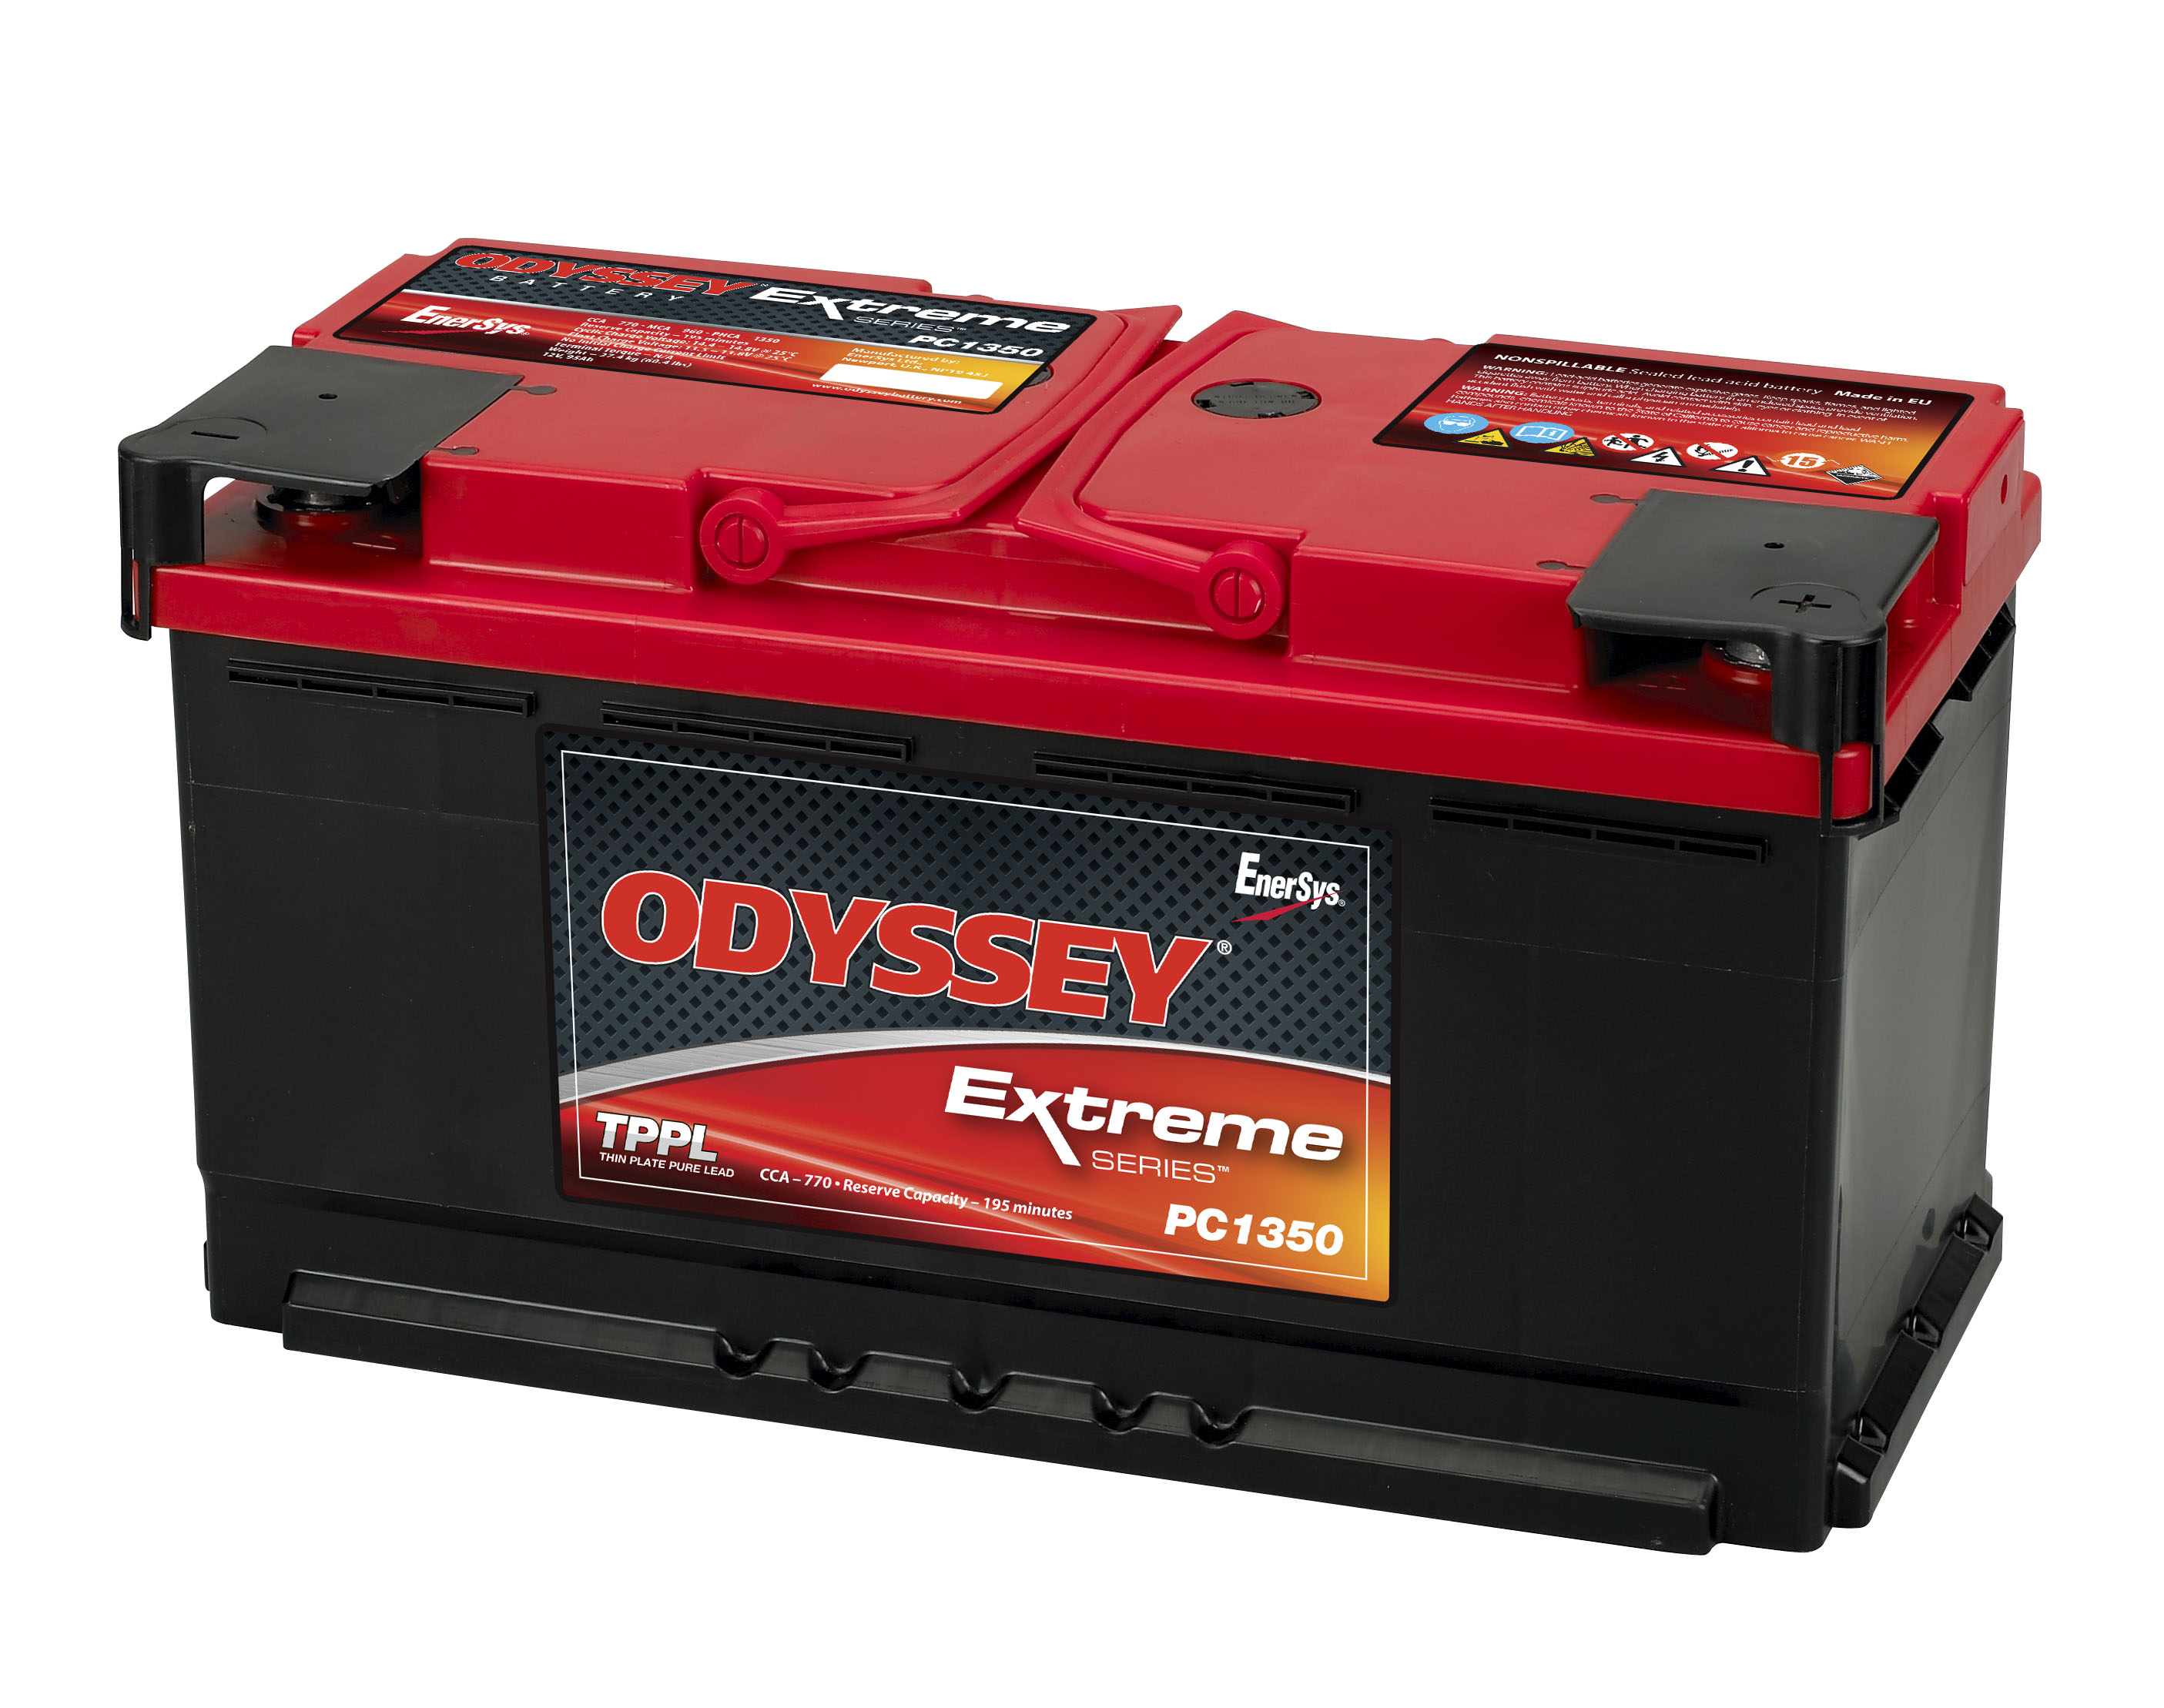 Odyssey Extreme PC1350 Product Picture.jpg